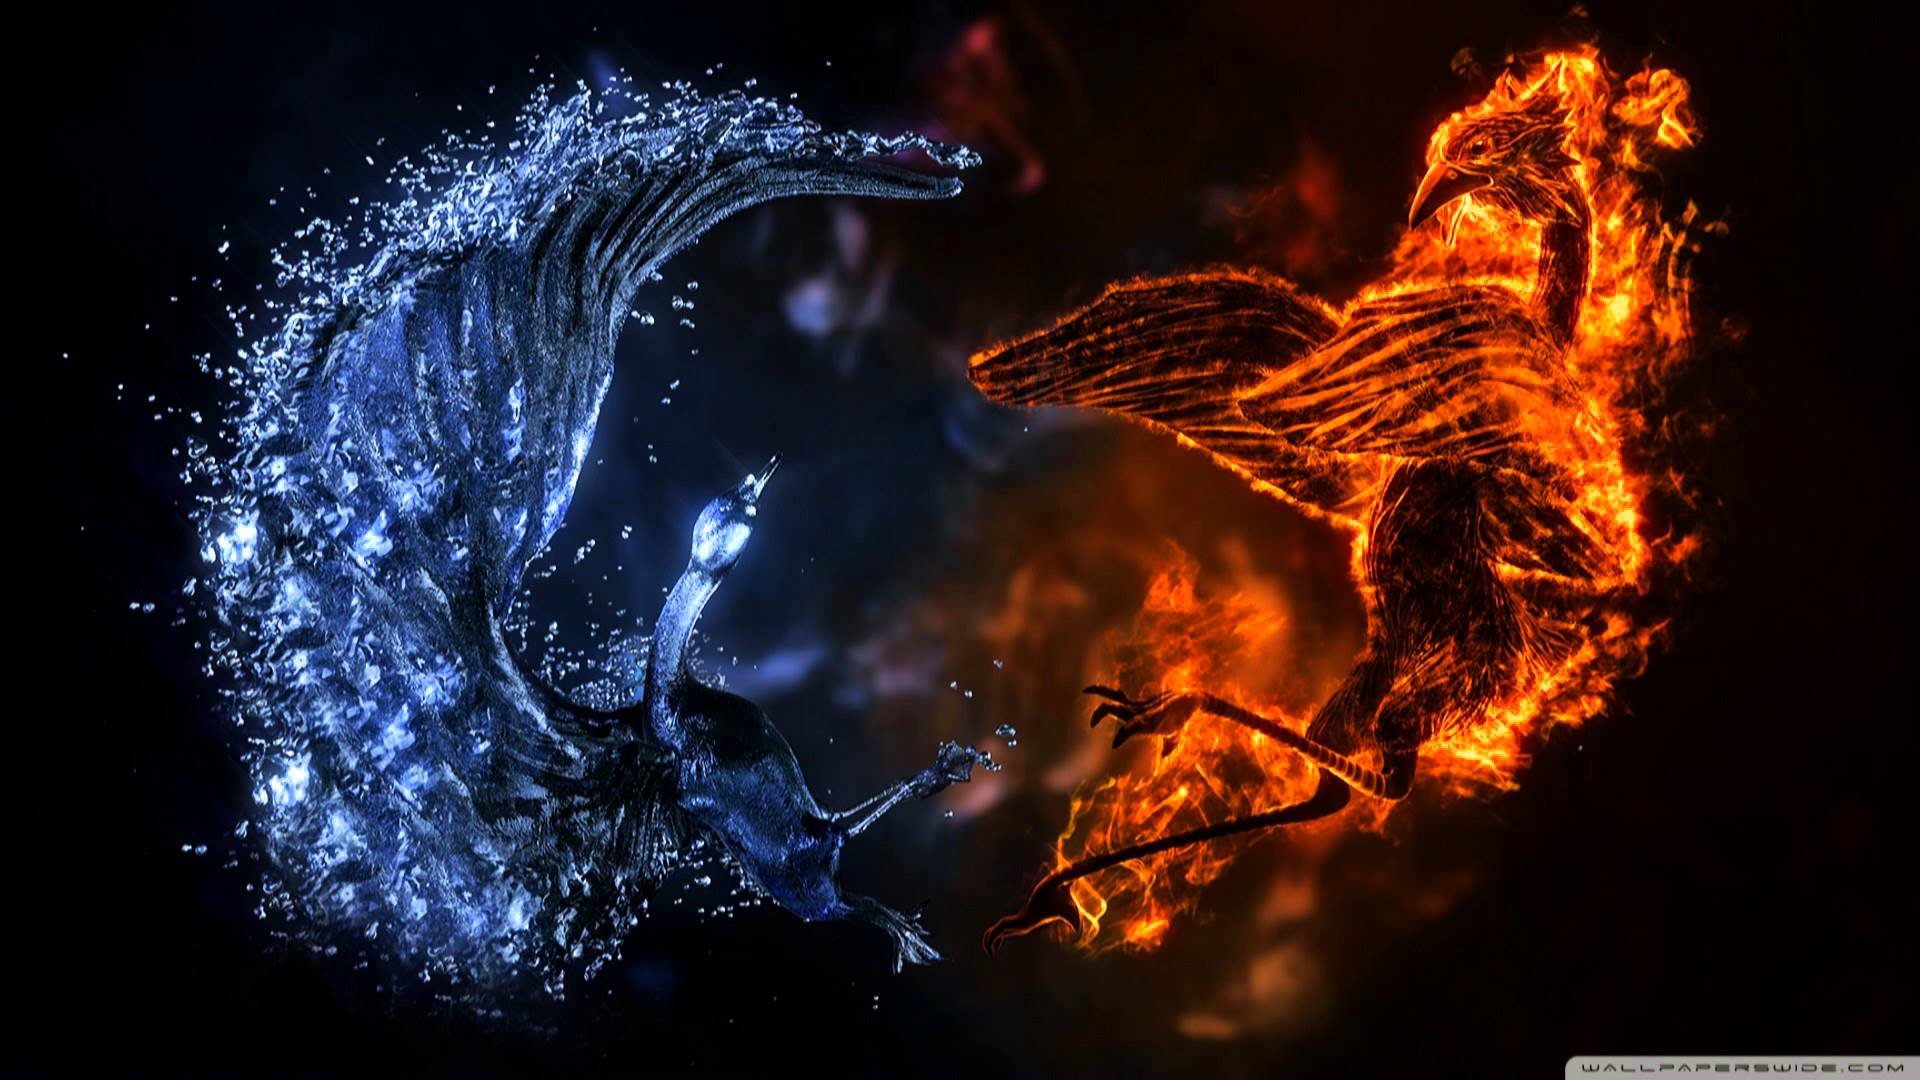 Fire And Ice Backgrounds, Compatible - PC, Mobile, Gadgets| 1920x1080 px